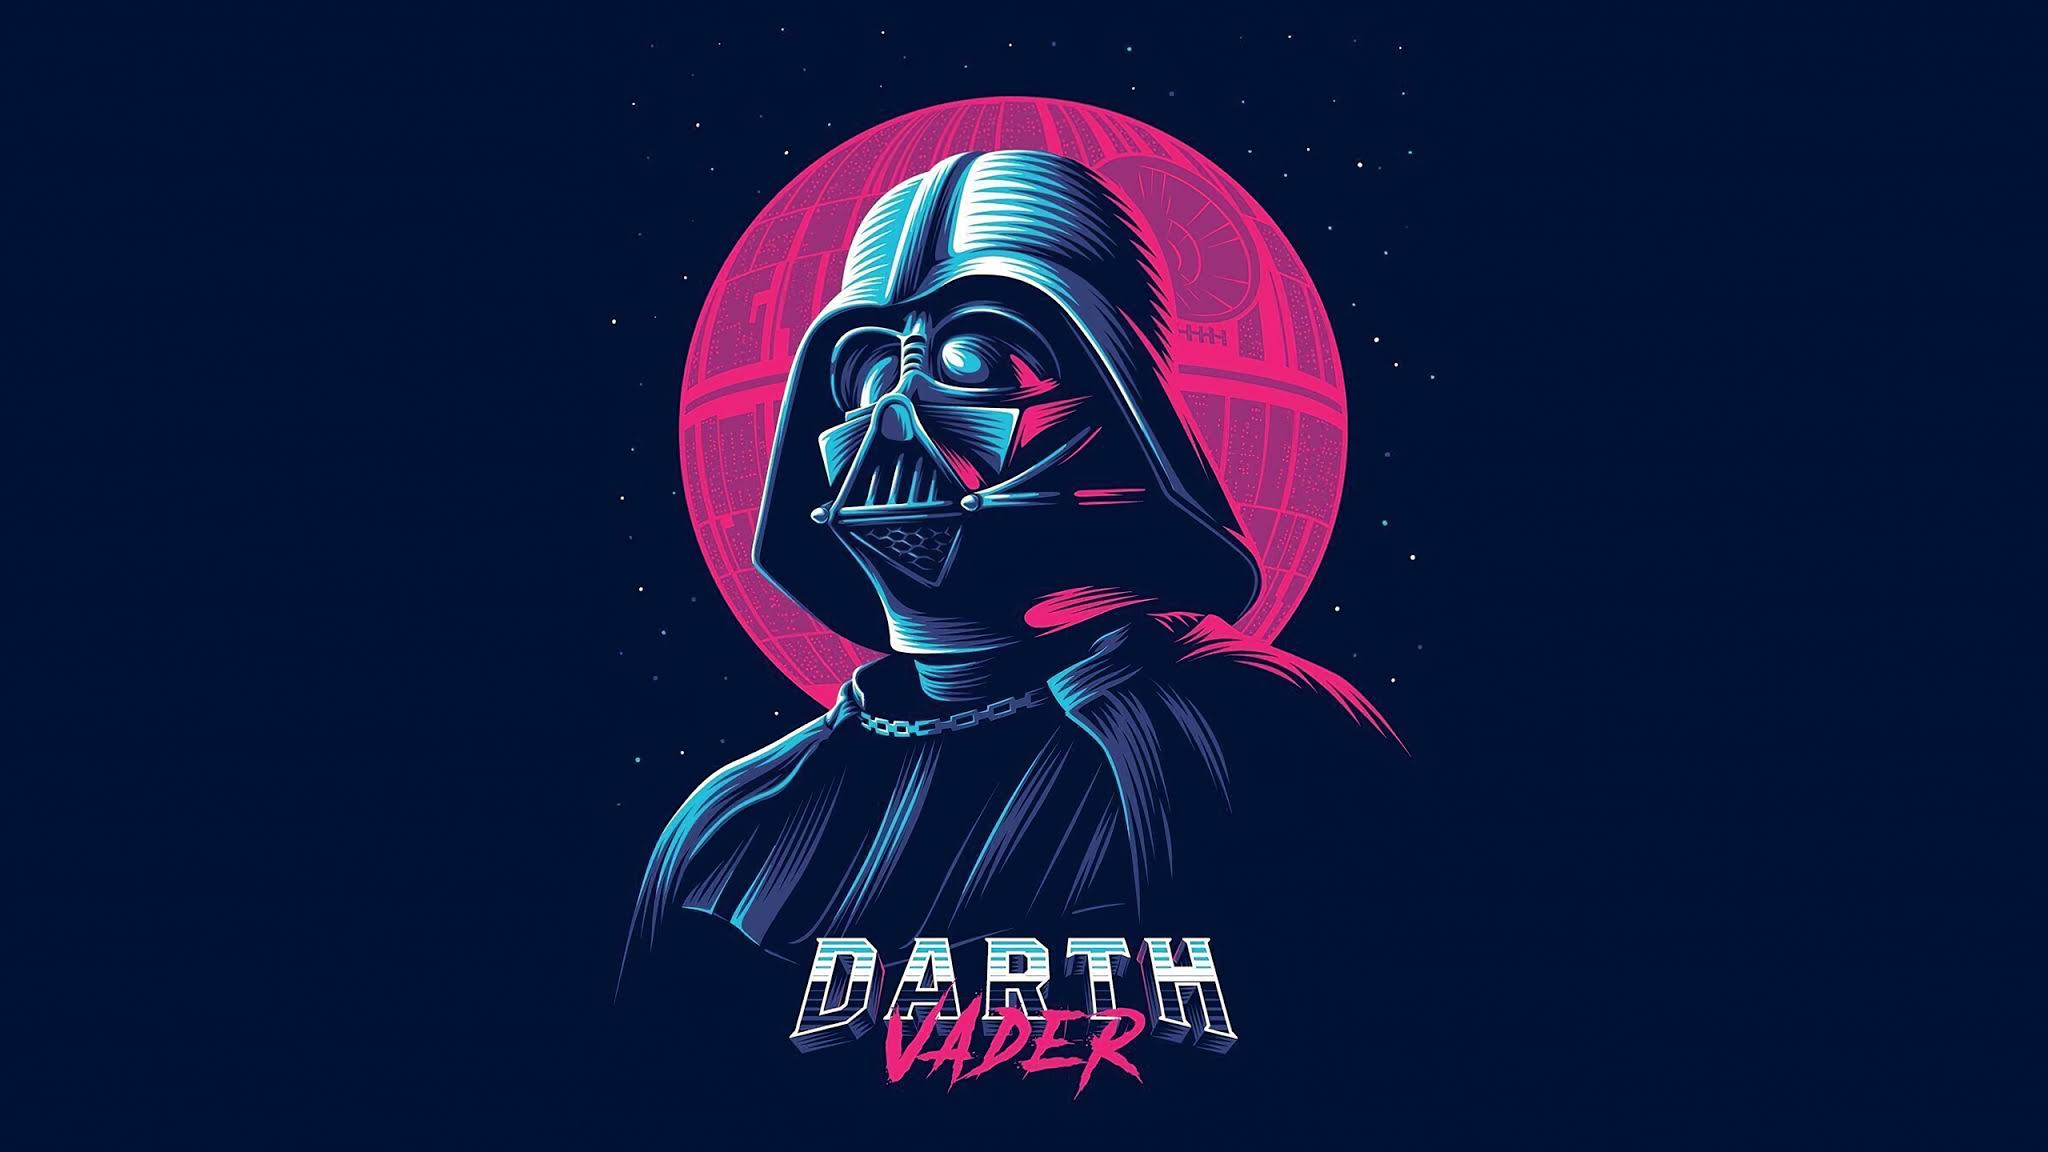 star wars darth vader images